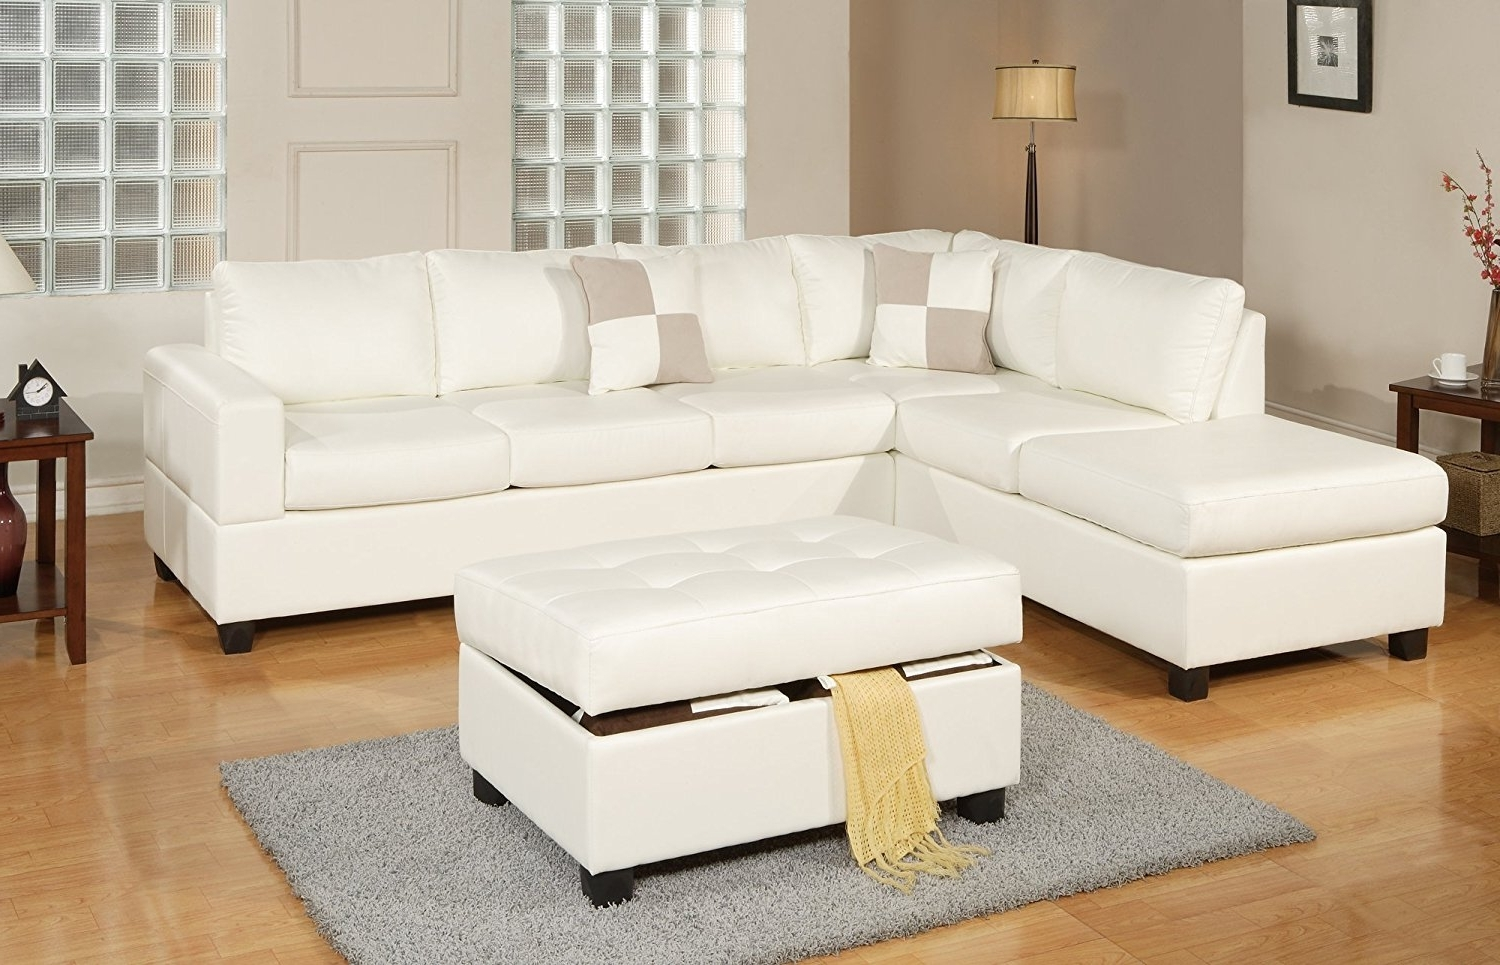 Newest White Sectional Sofas With Amazon: Bobkona Soft Touch Reversible Bonded Leather Match  (View 8 of 15)